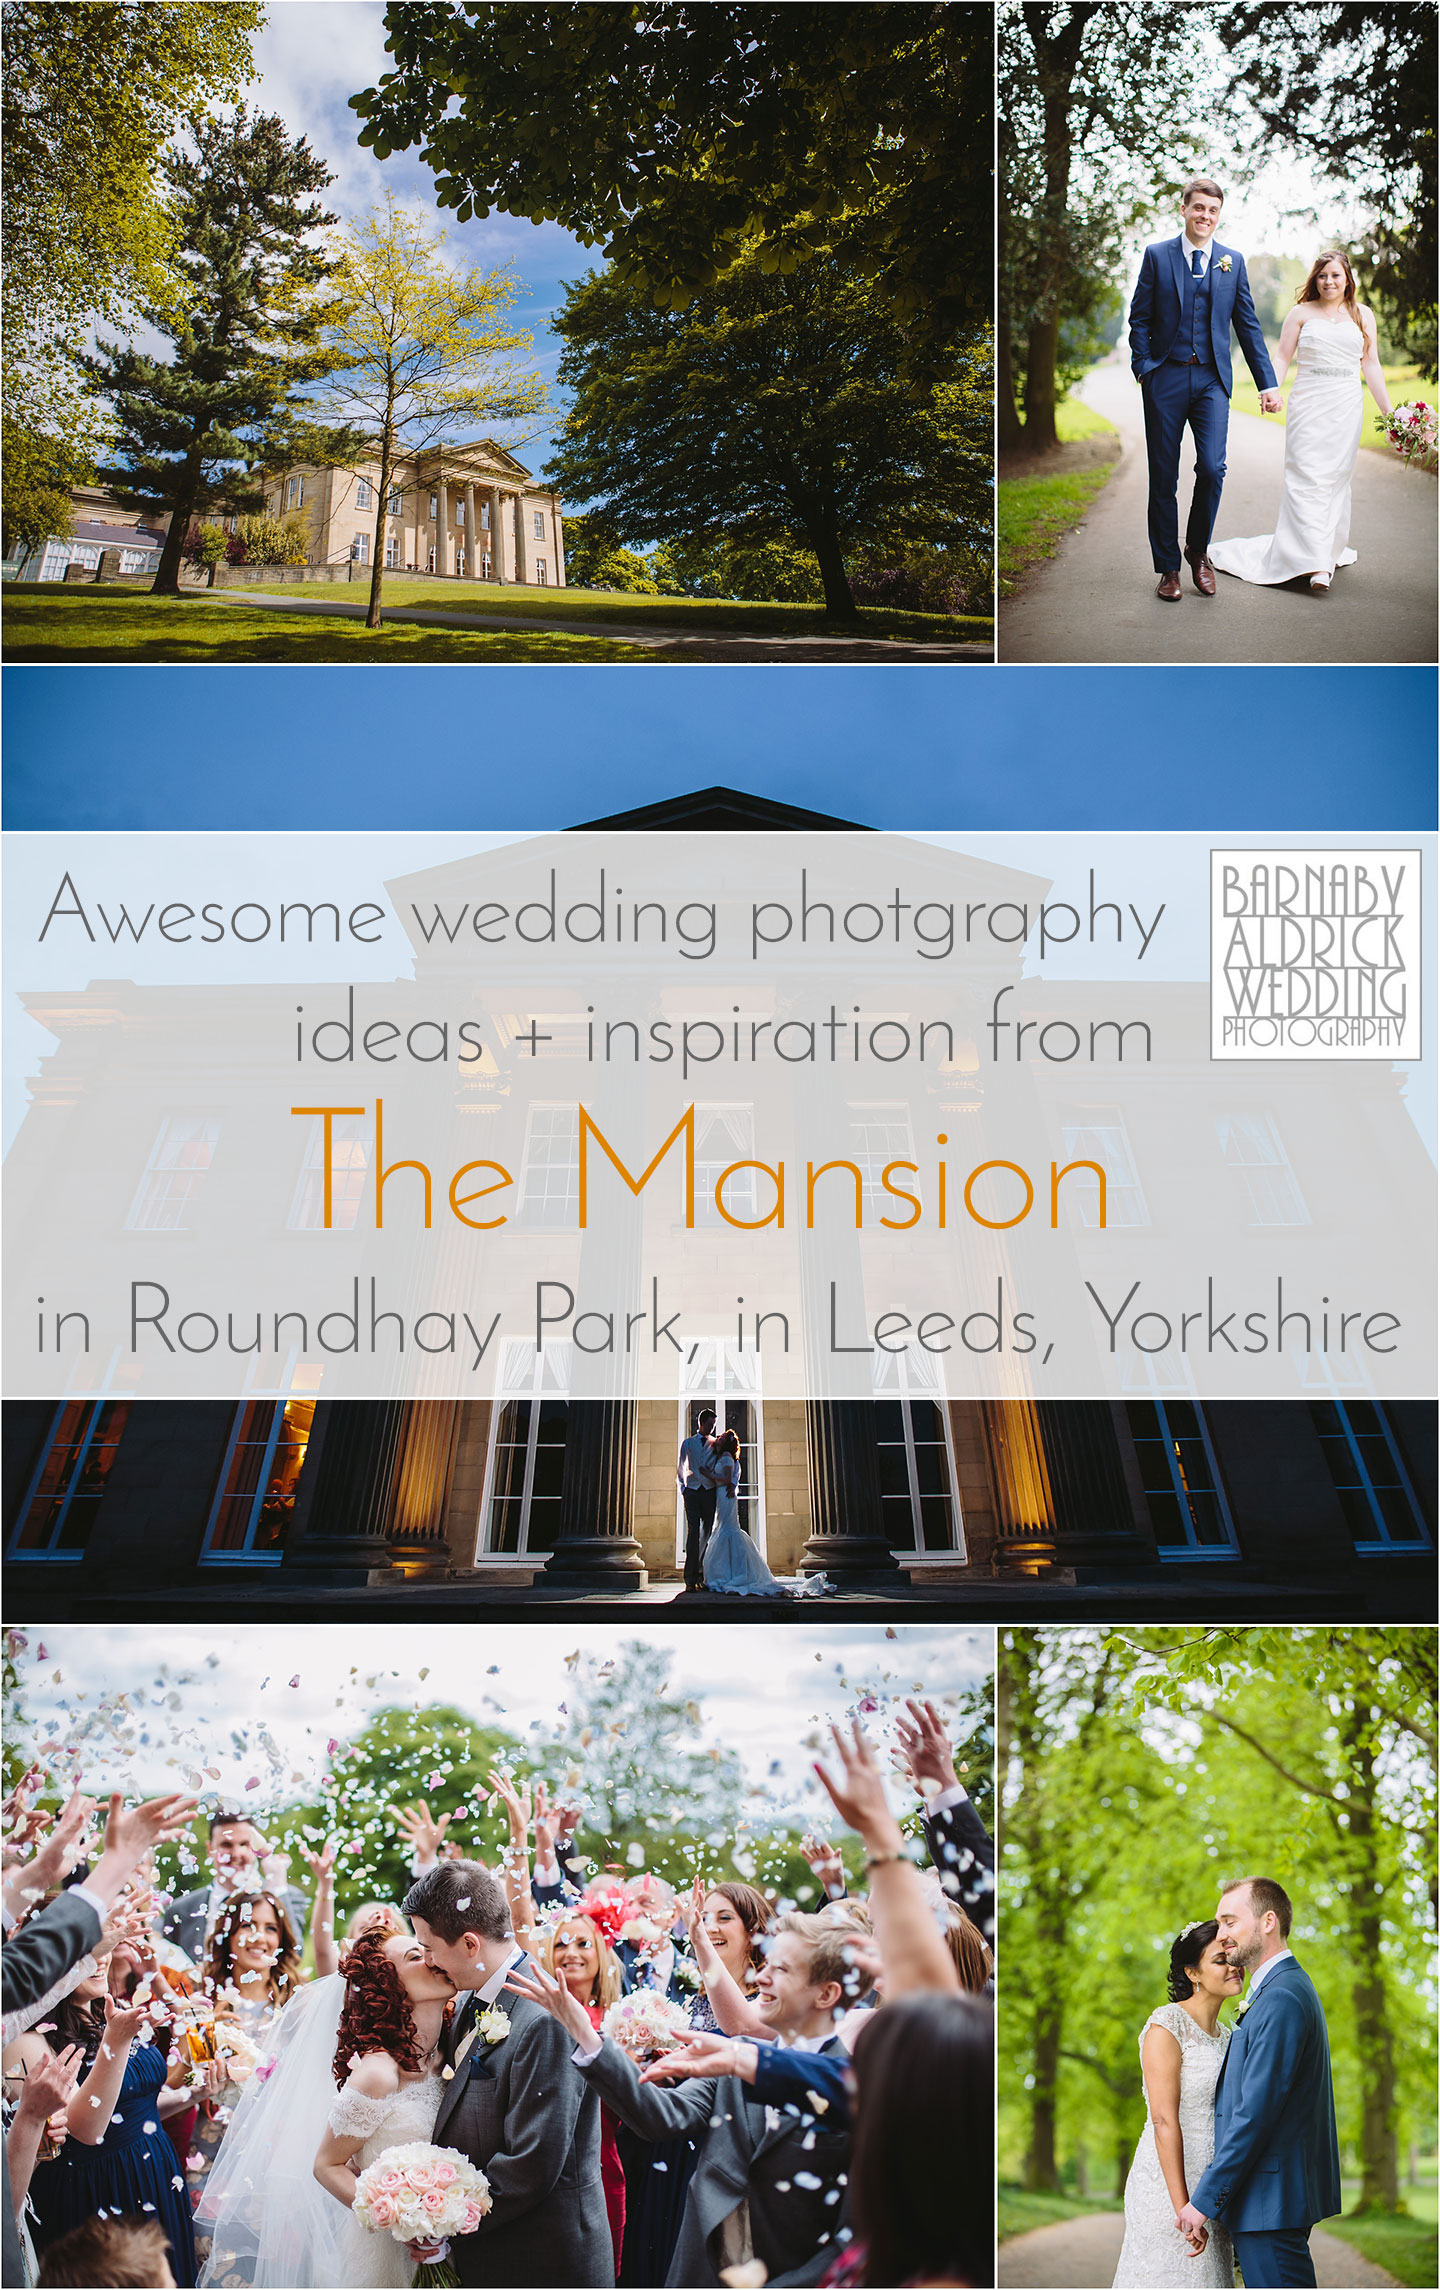 Wedding Photos from The Mansion in Roundhay Park in Leeds by a Yorkshire photographer